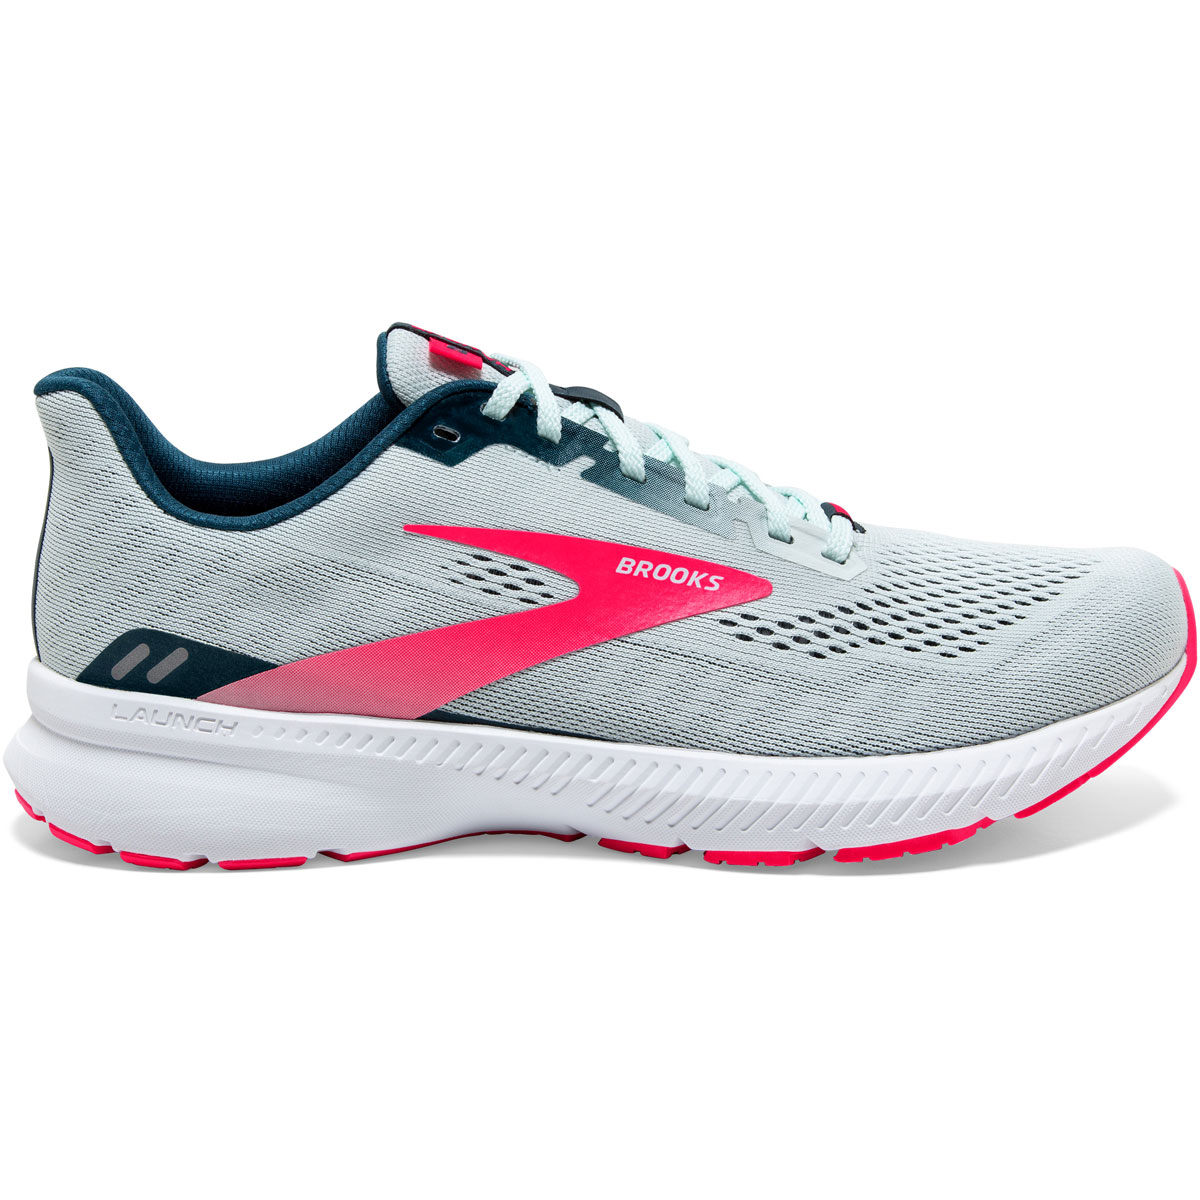 Women's Brooks Launch 8 Running Shoe - Color: Ice Flow/Navy/Pink - Size: 5 - Width: Regular, Ice Flow/Navy/Pink, large, image 1